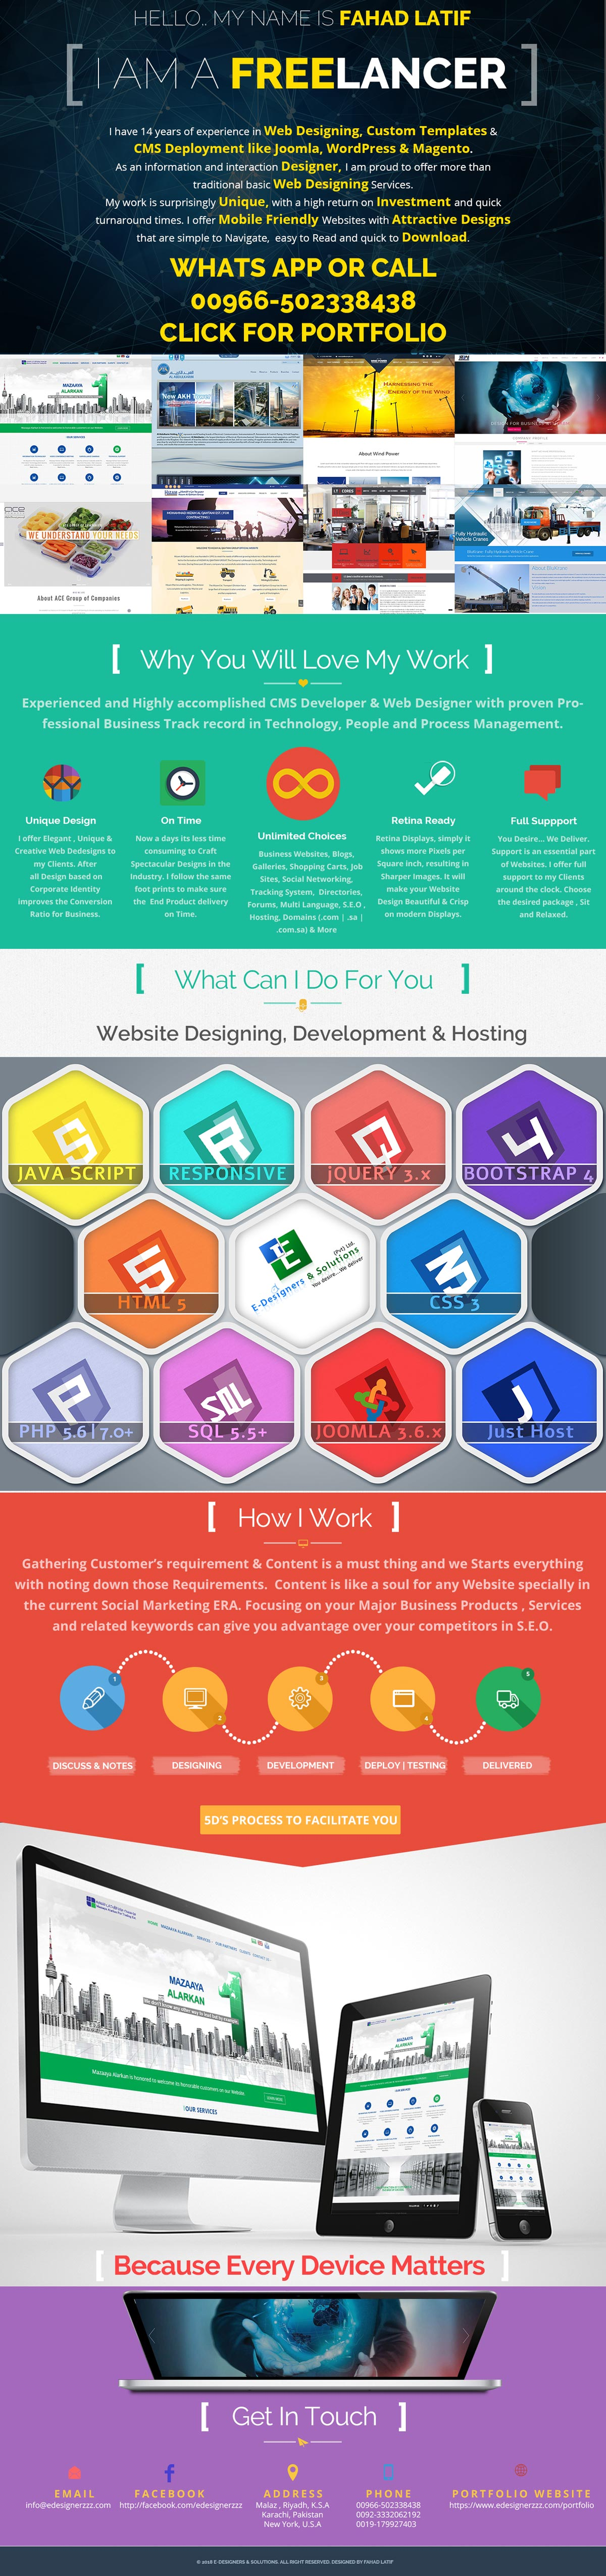 Creative Website Packages Starting From 1500 SR - Riyadh